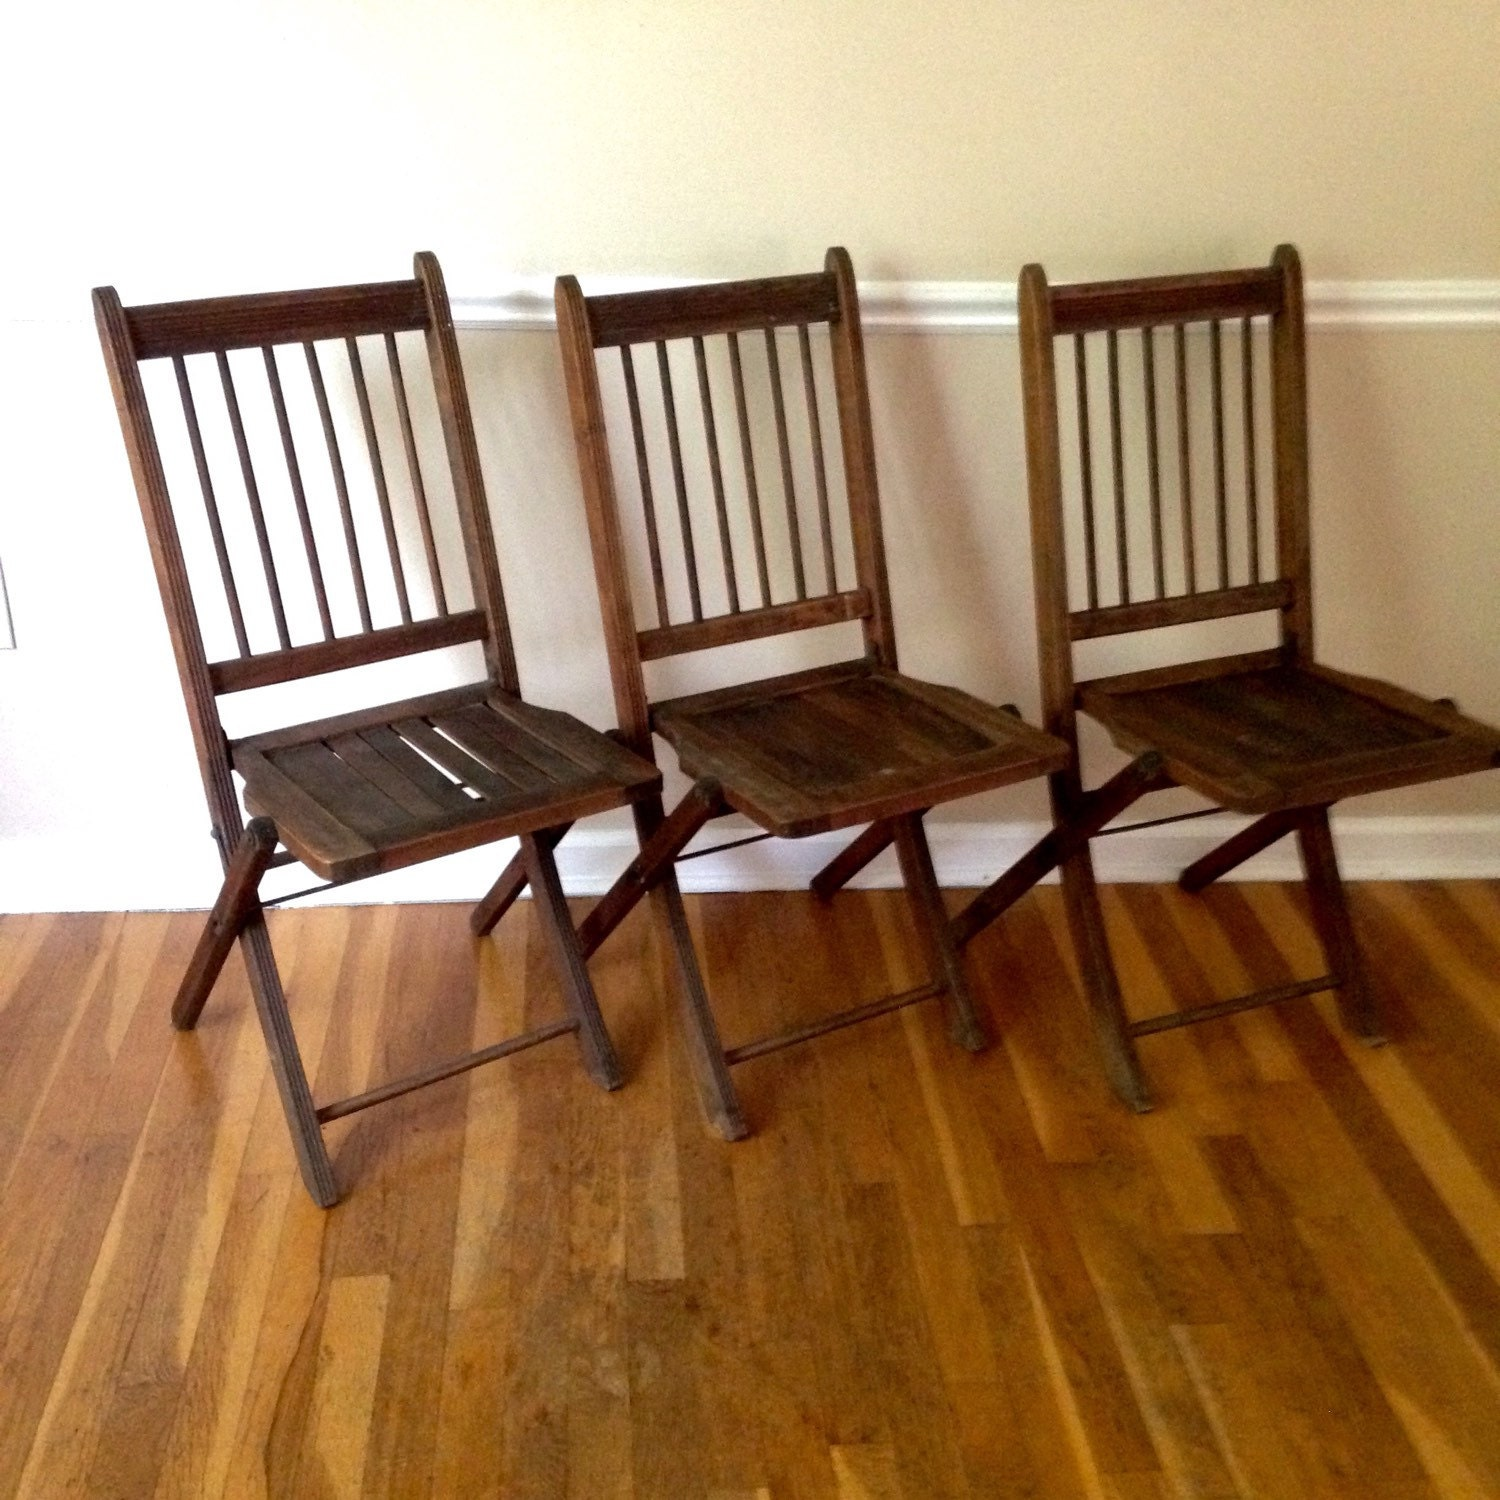 Vintage Folding Wooden Chair Set Haute Juice